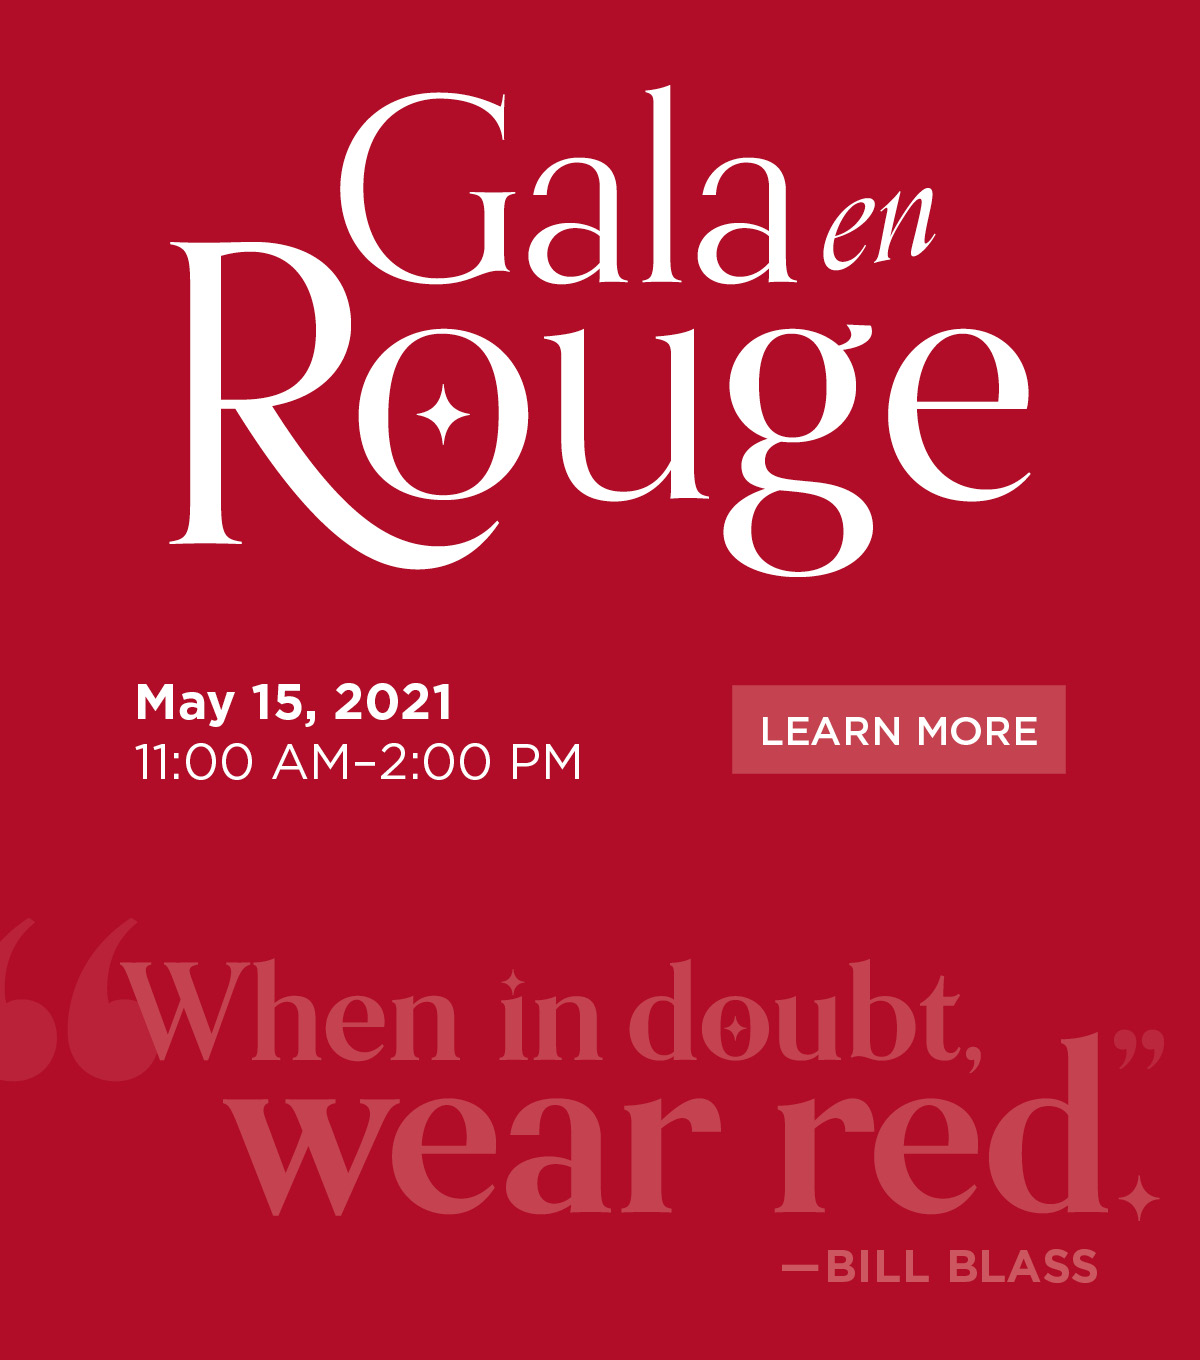 Gala en Rouge; May 15, 2021, 11:00 AM-2:00 PM; Learn More;